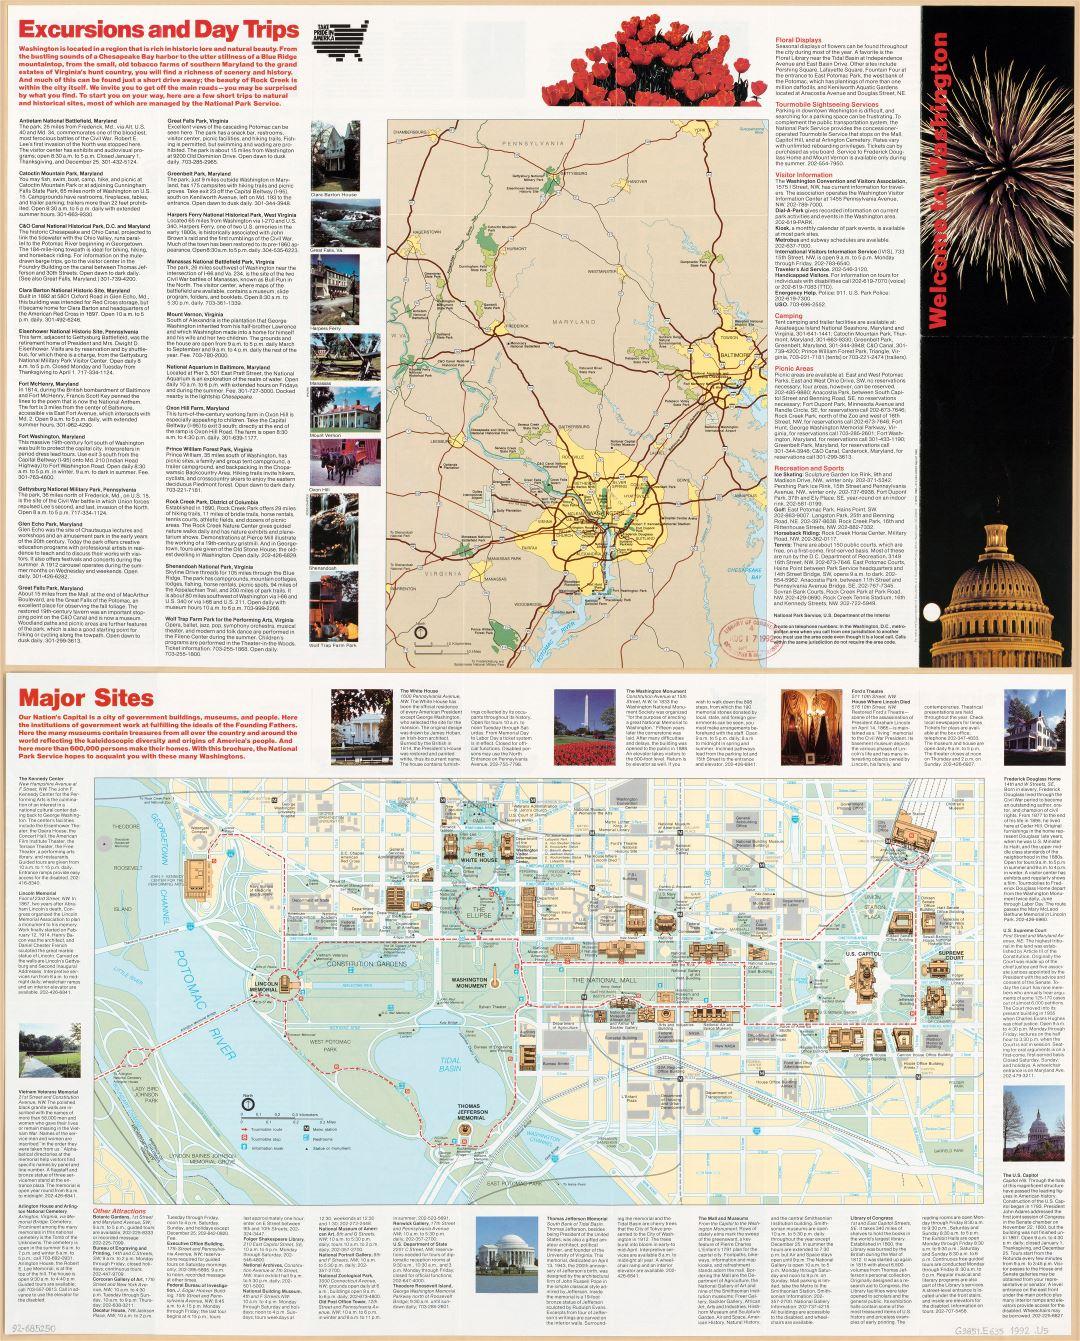 Large scale detailed Washington DC tourist map - 1992